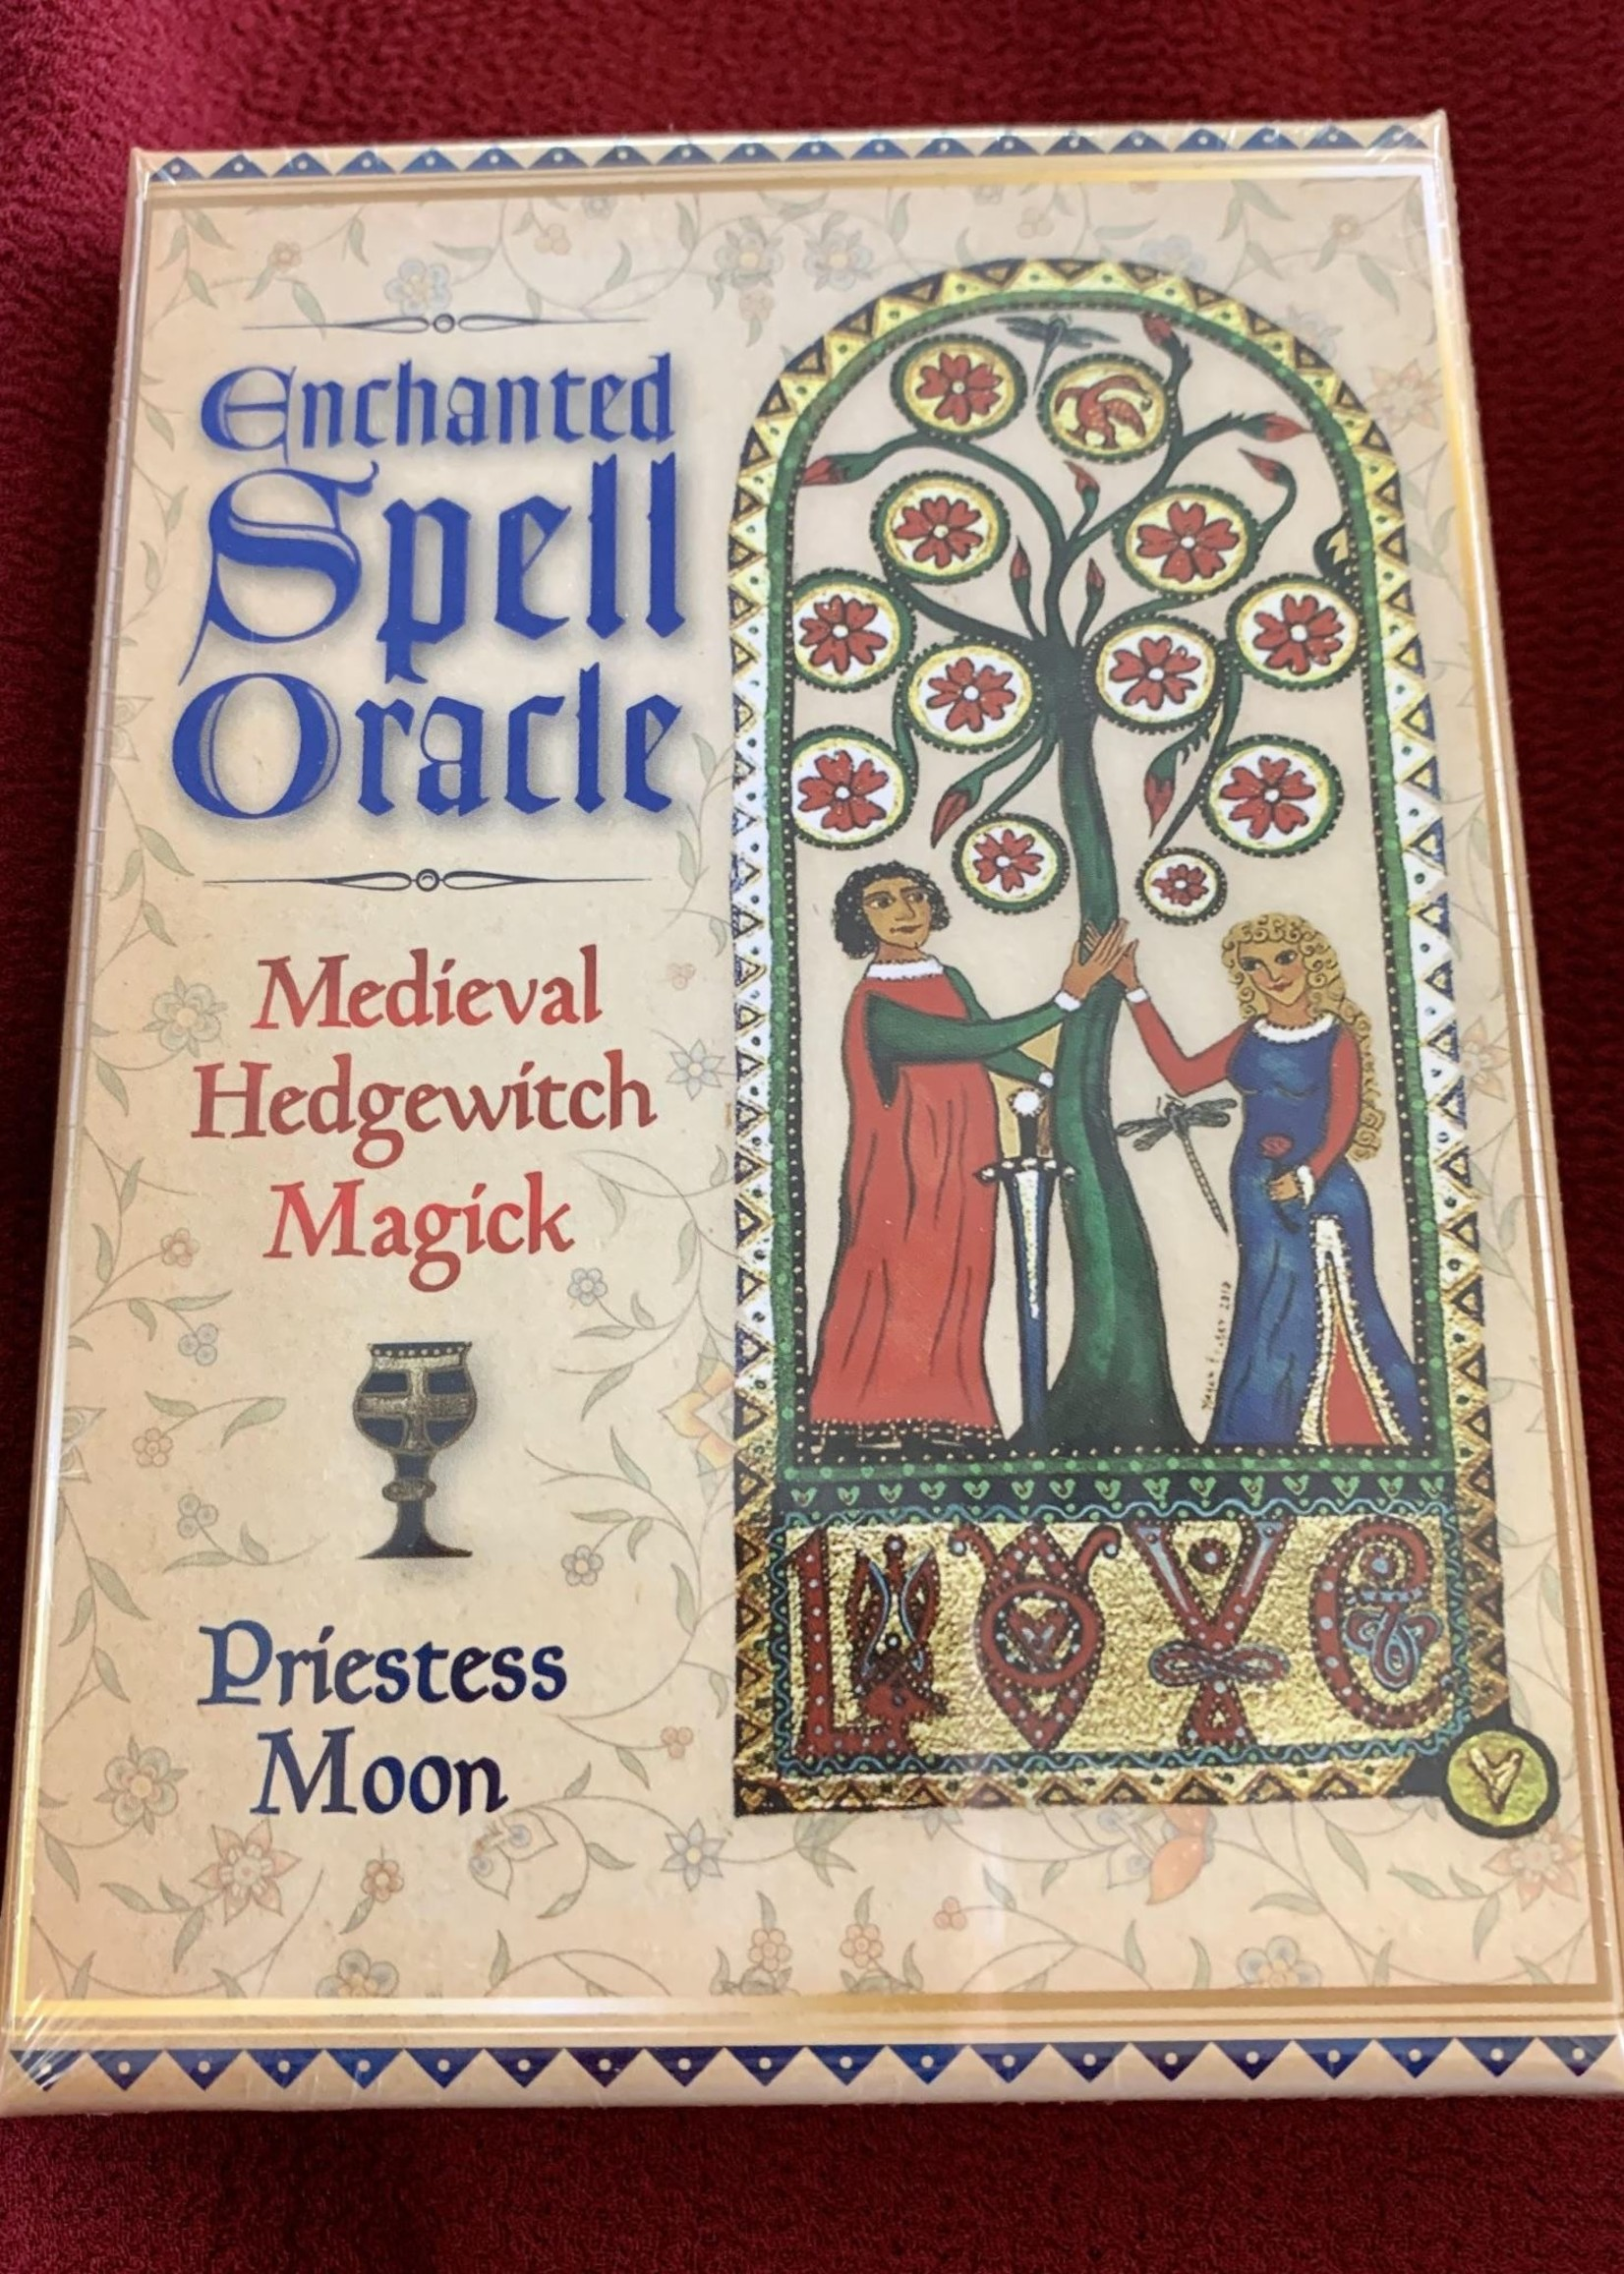 Enchanted Spell Oracle Medieval Hedgewitch Magick